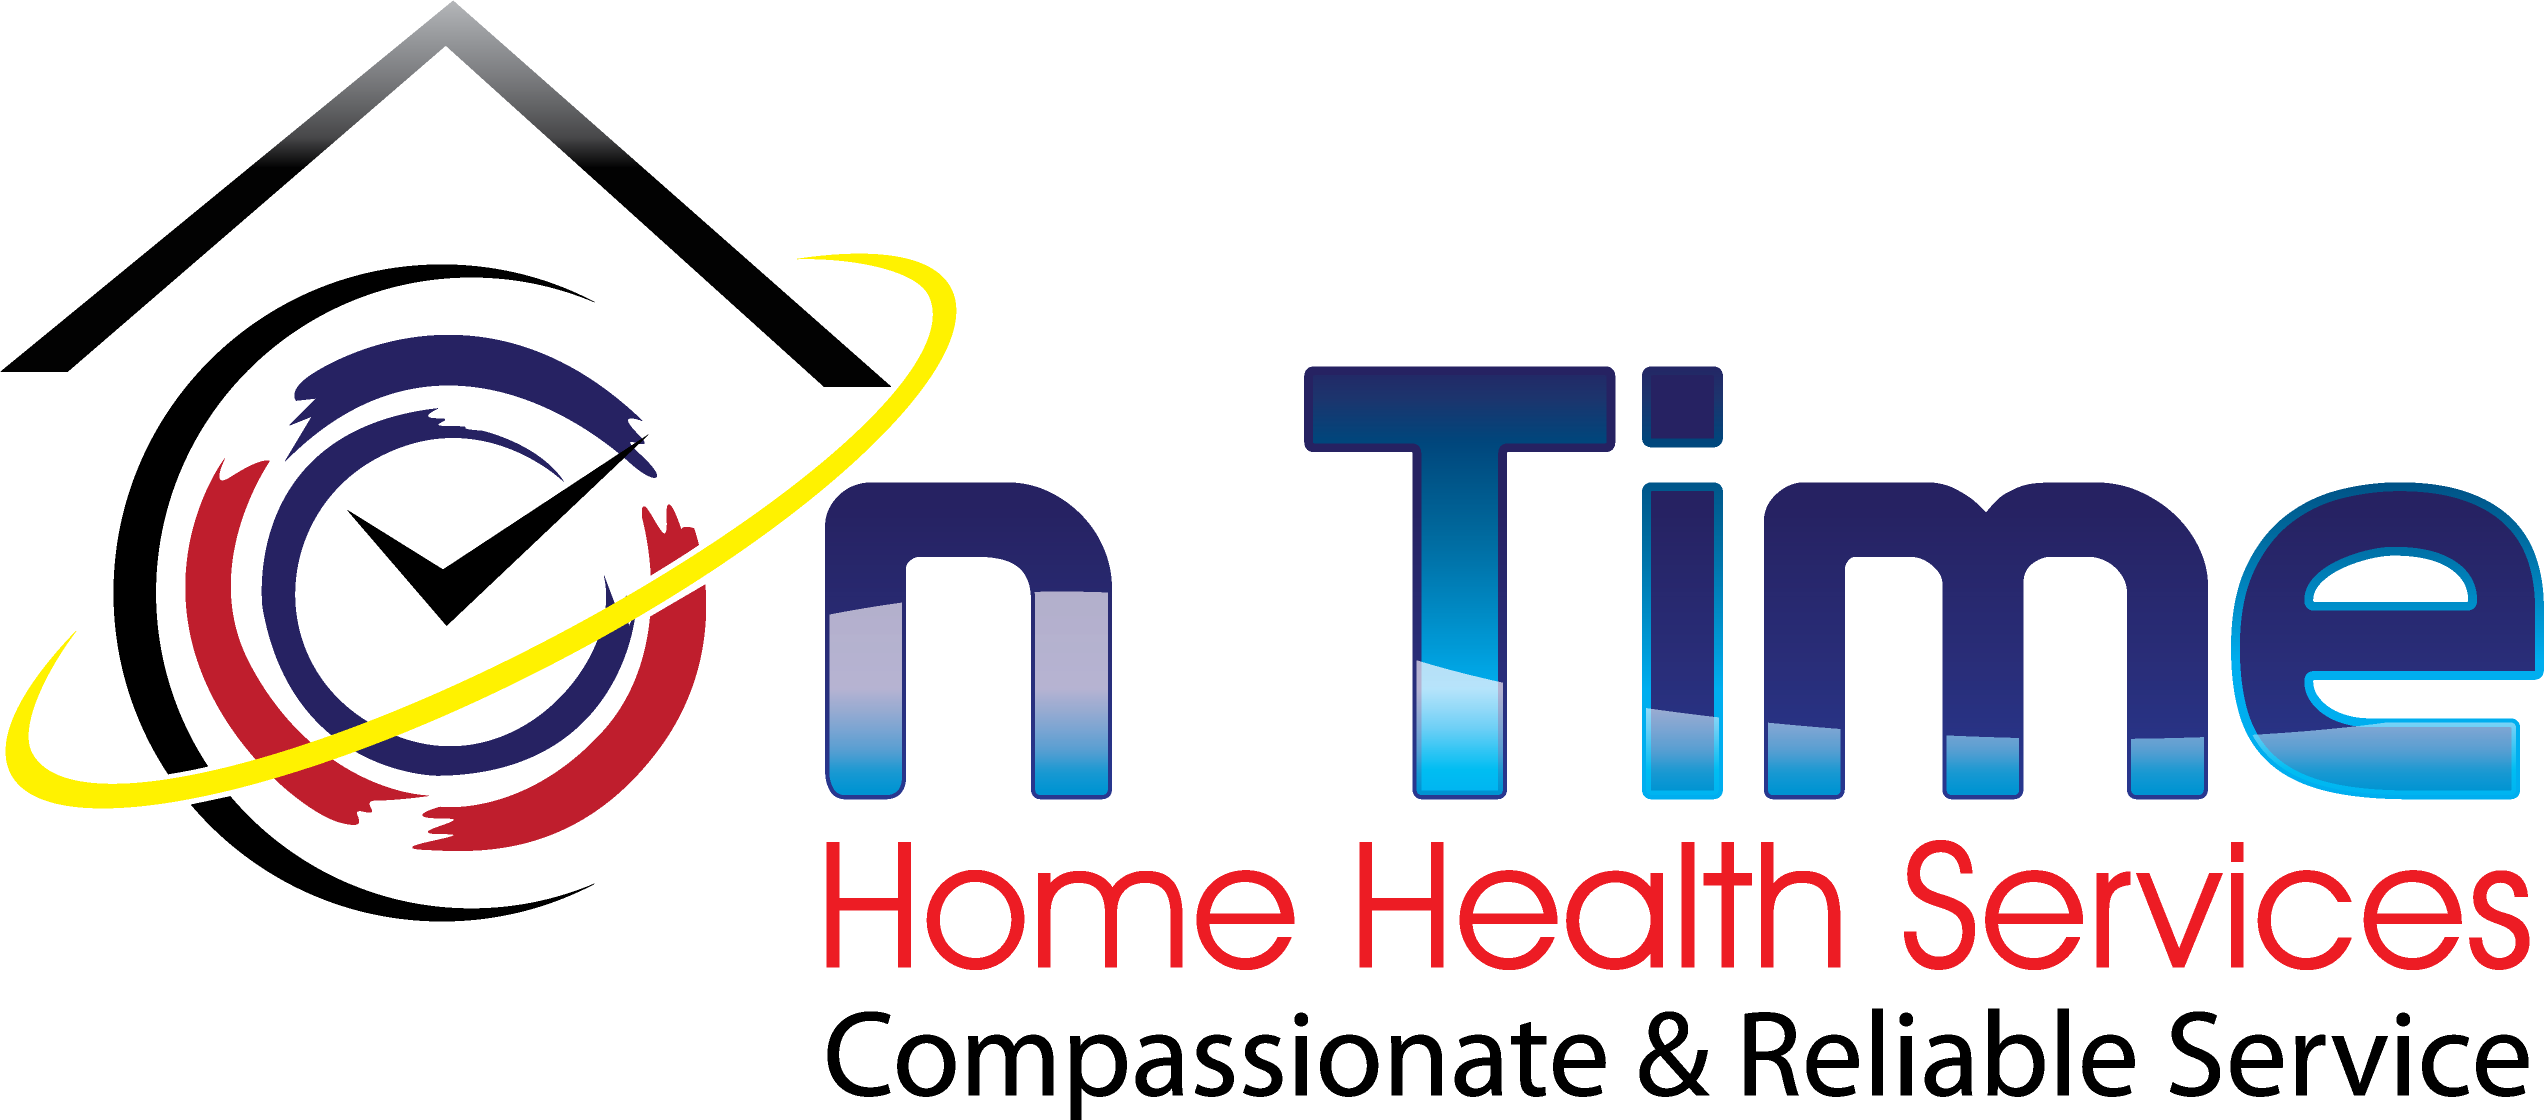 On Time Home Health Services,Llc